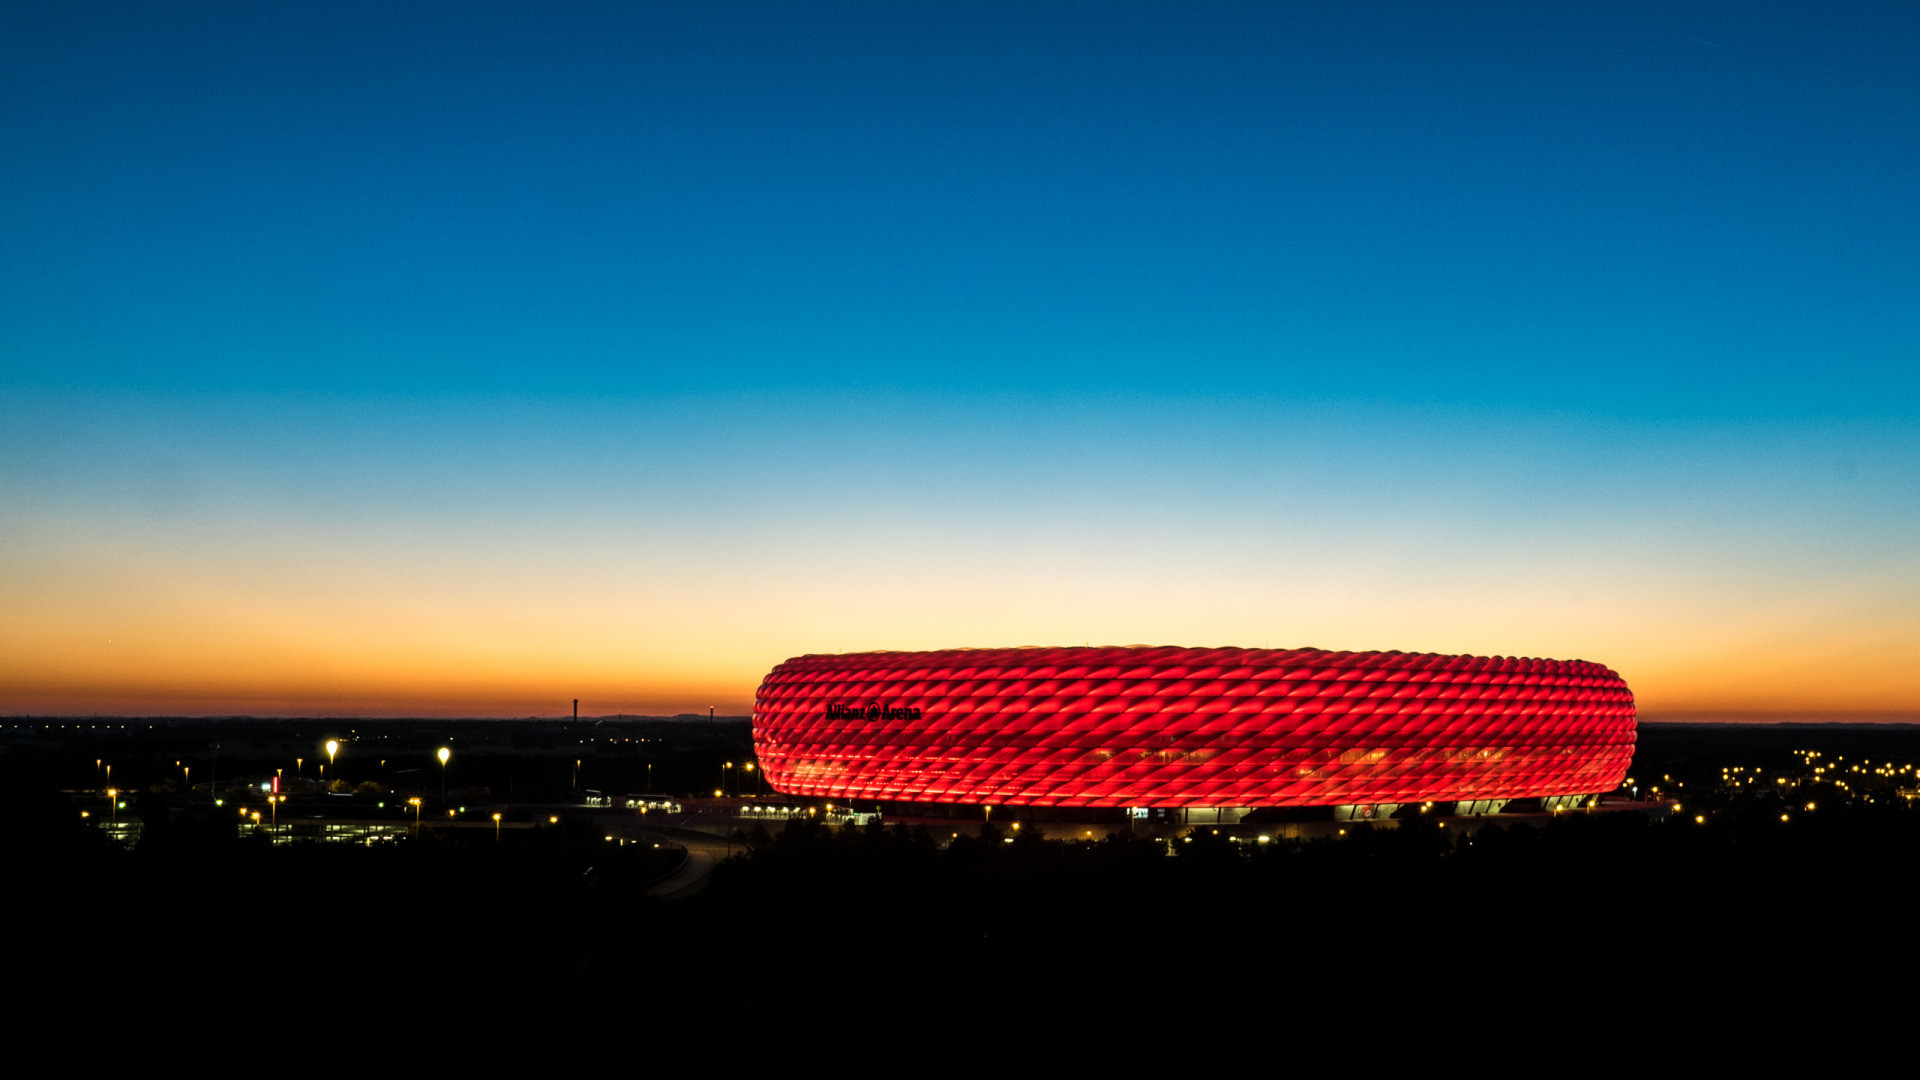 Hd Girl Highlights Wallpaper Allianz Arena Wallpapers 63 Images